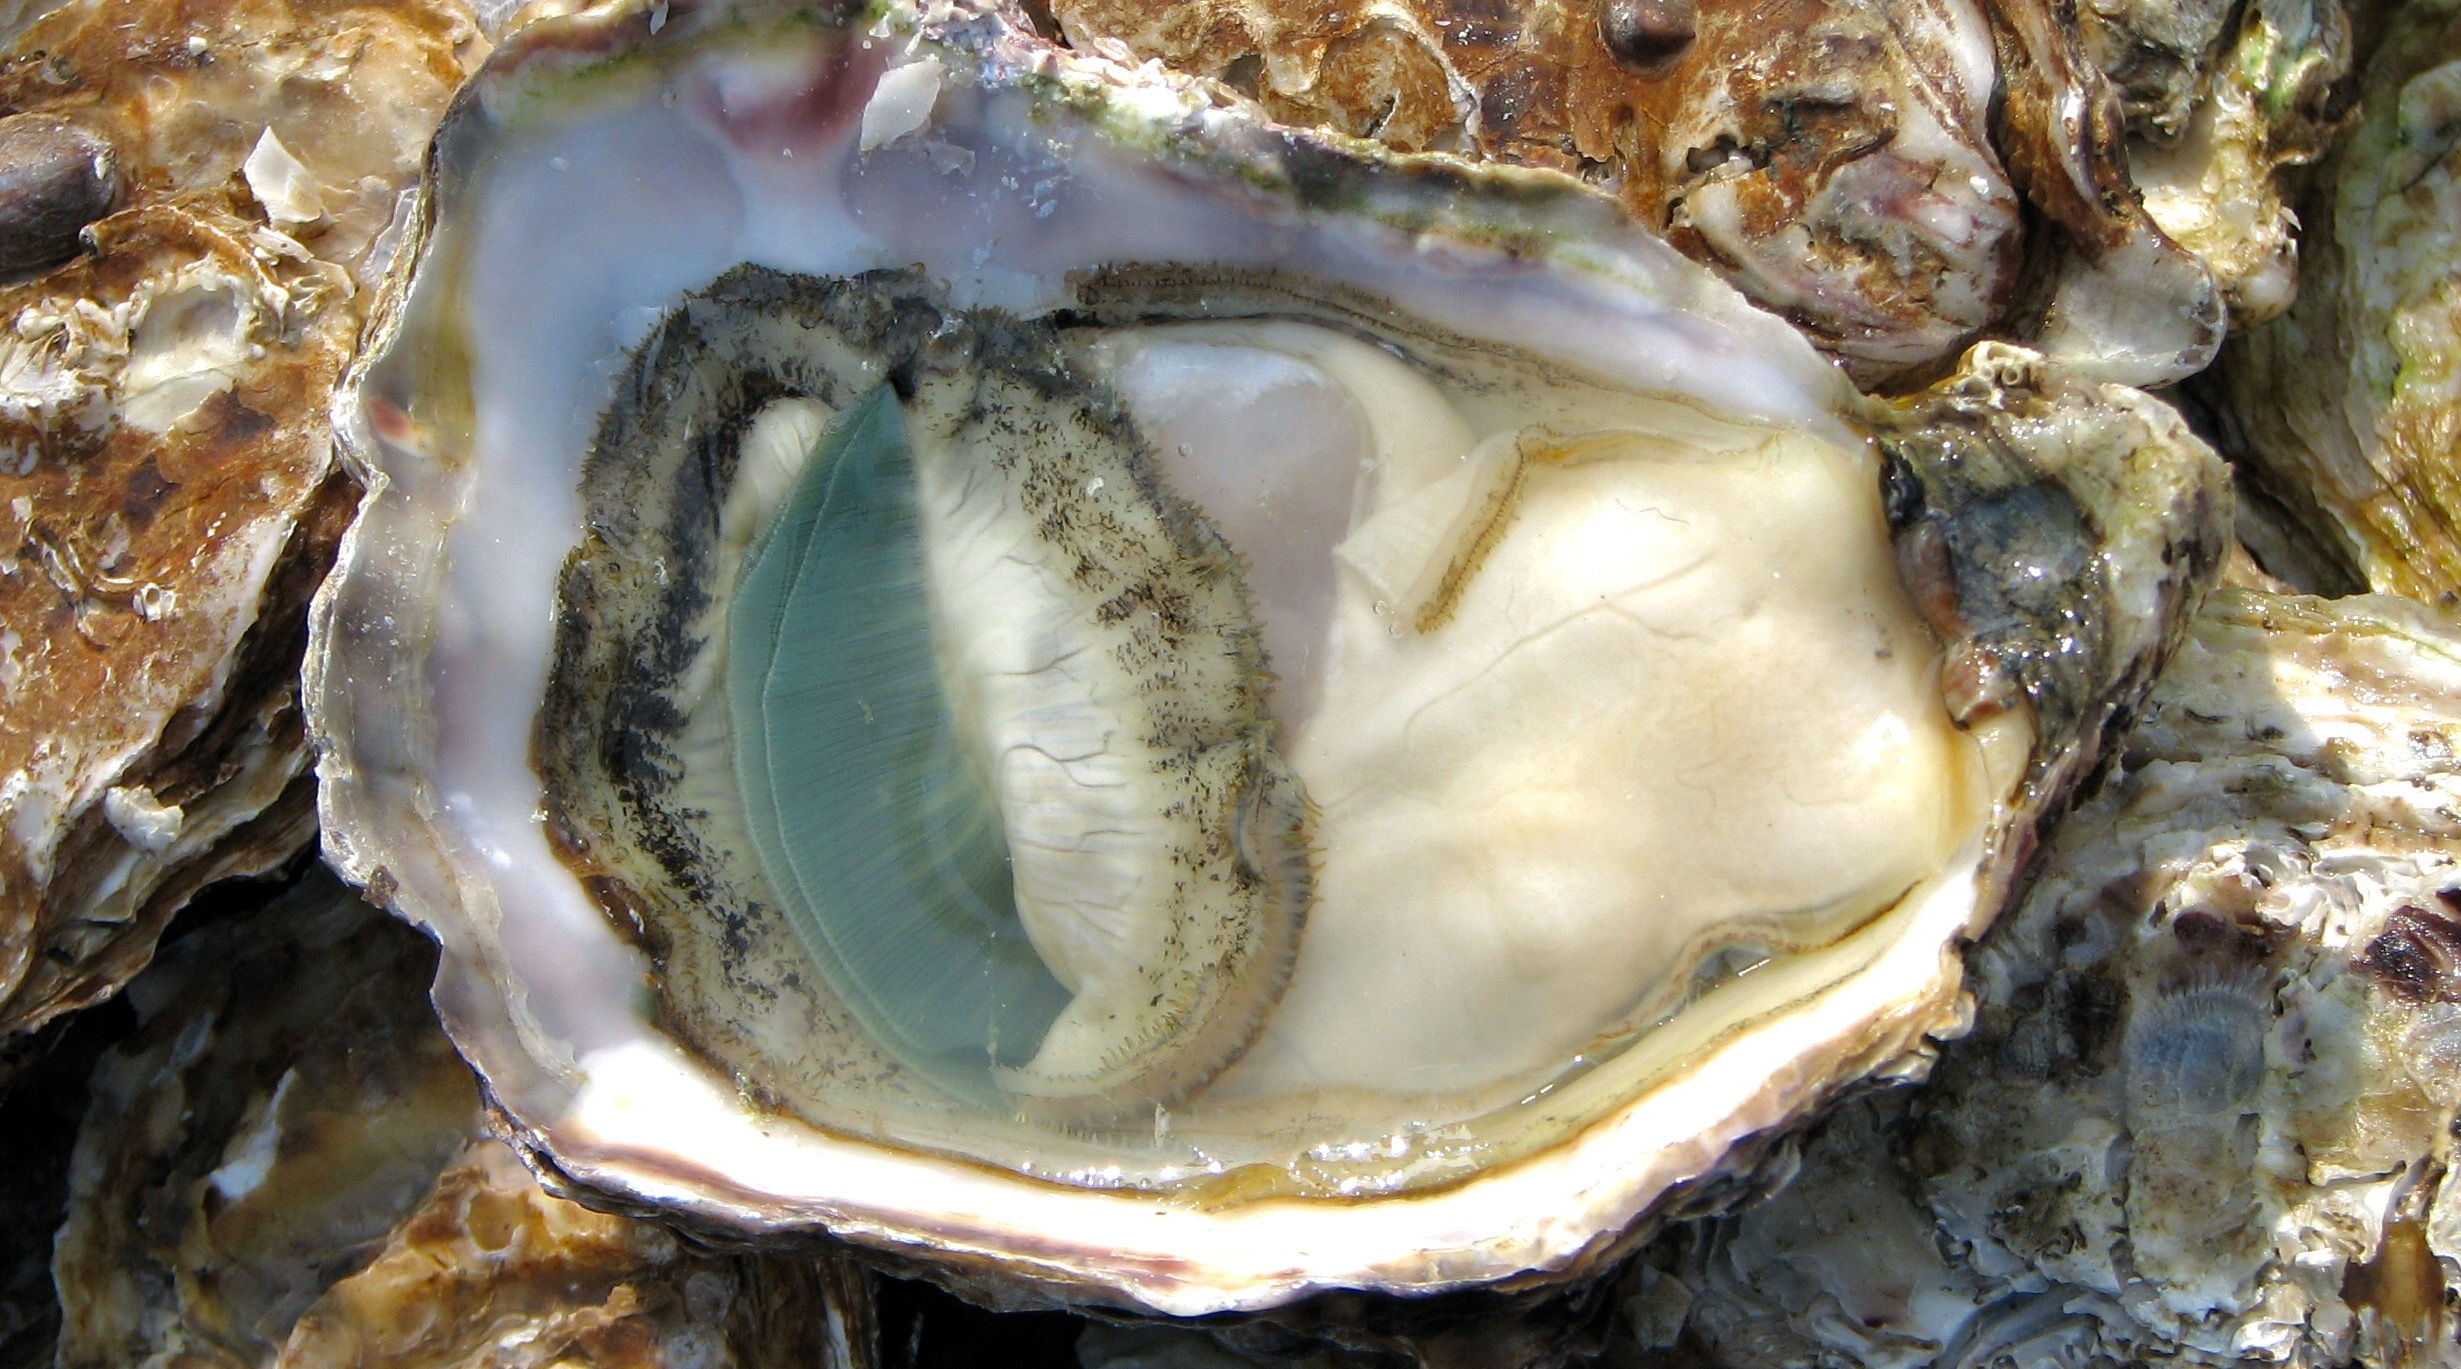 Is it true that oysters are an aphrodisiac